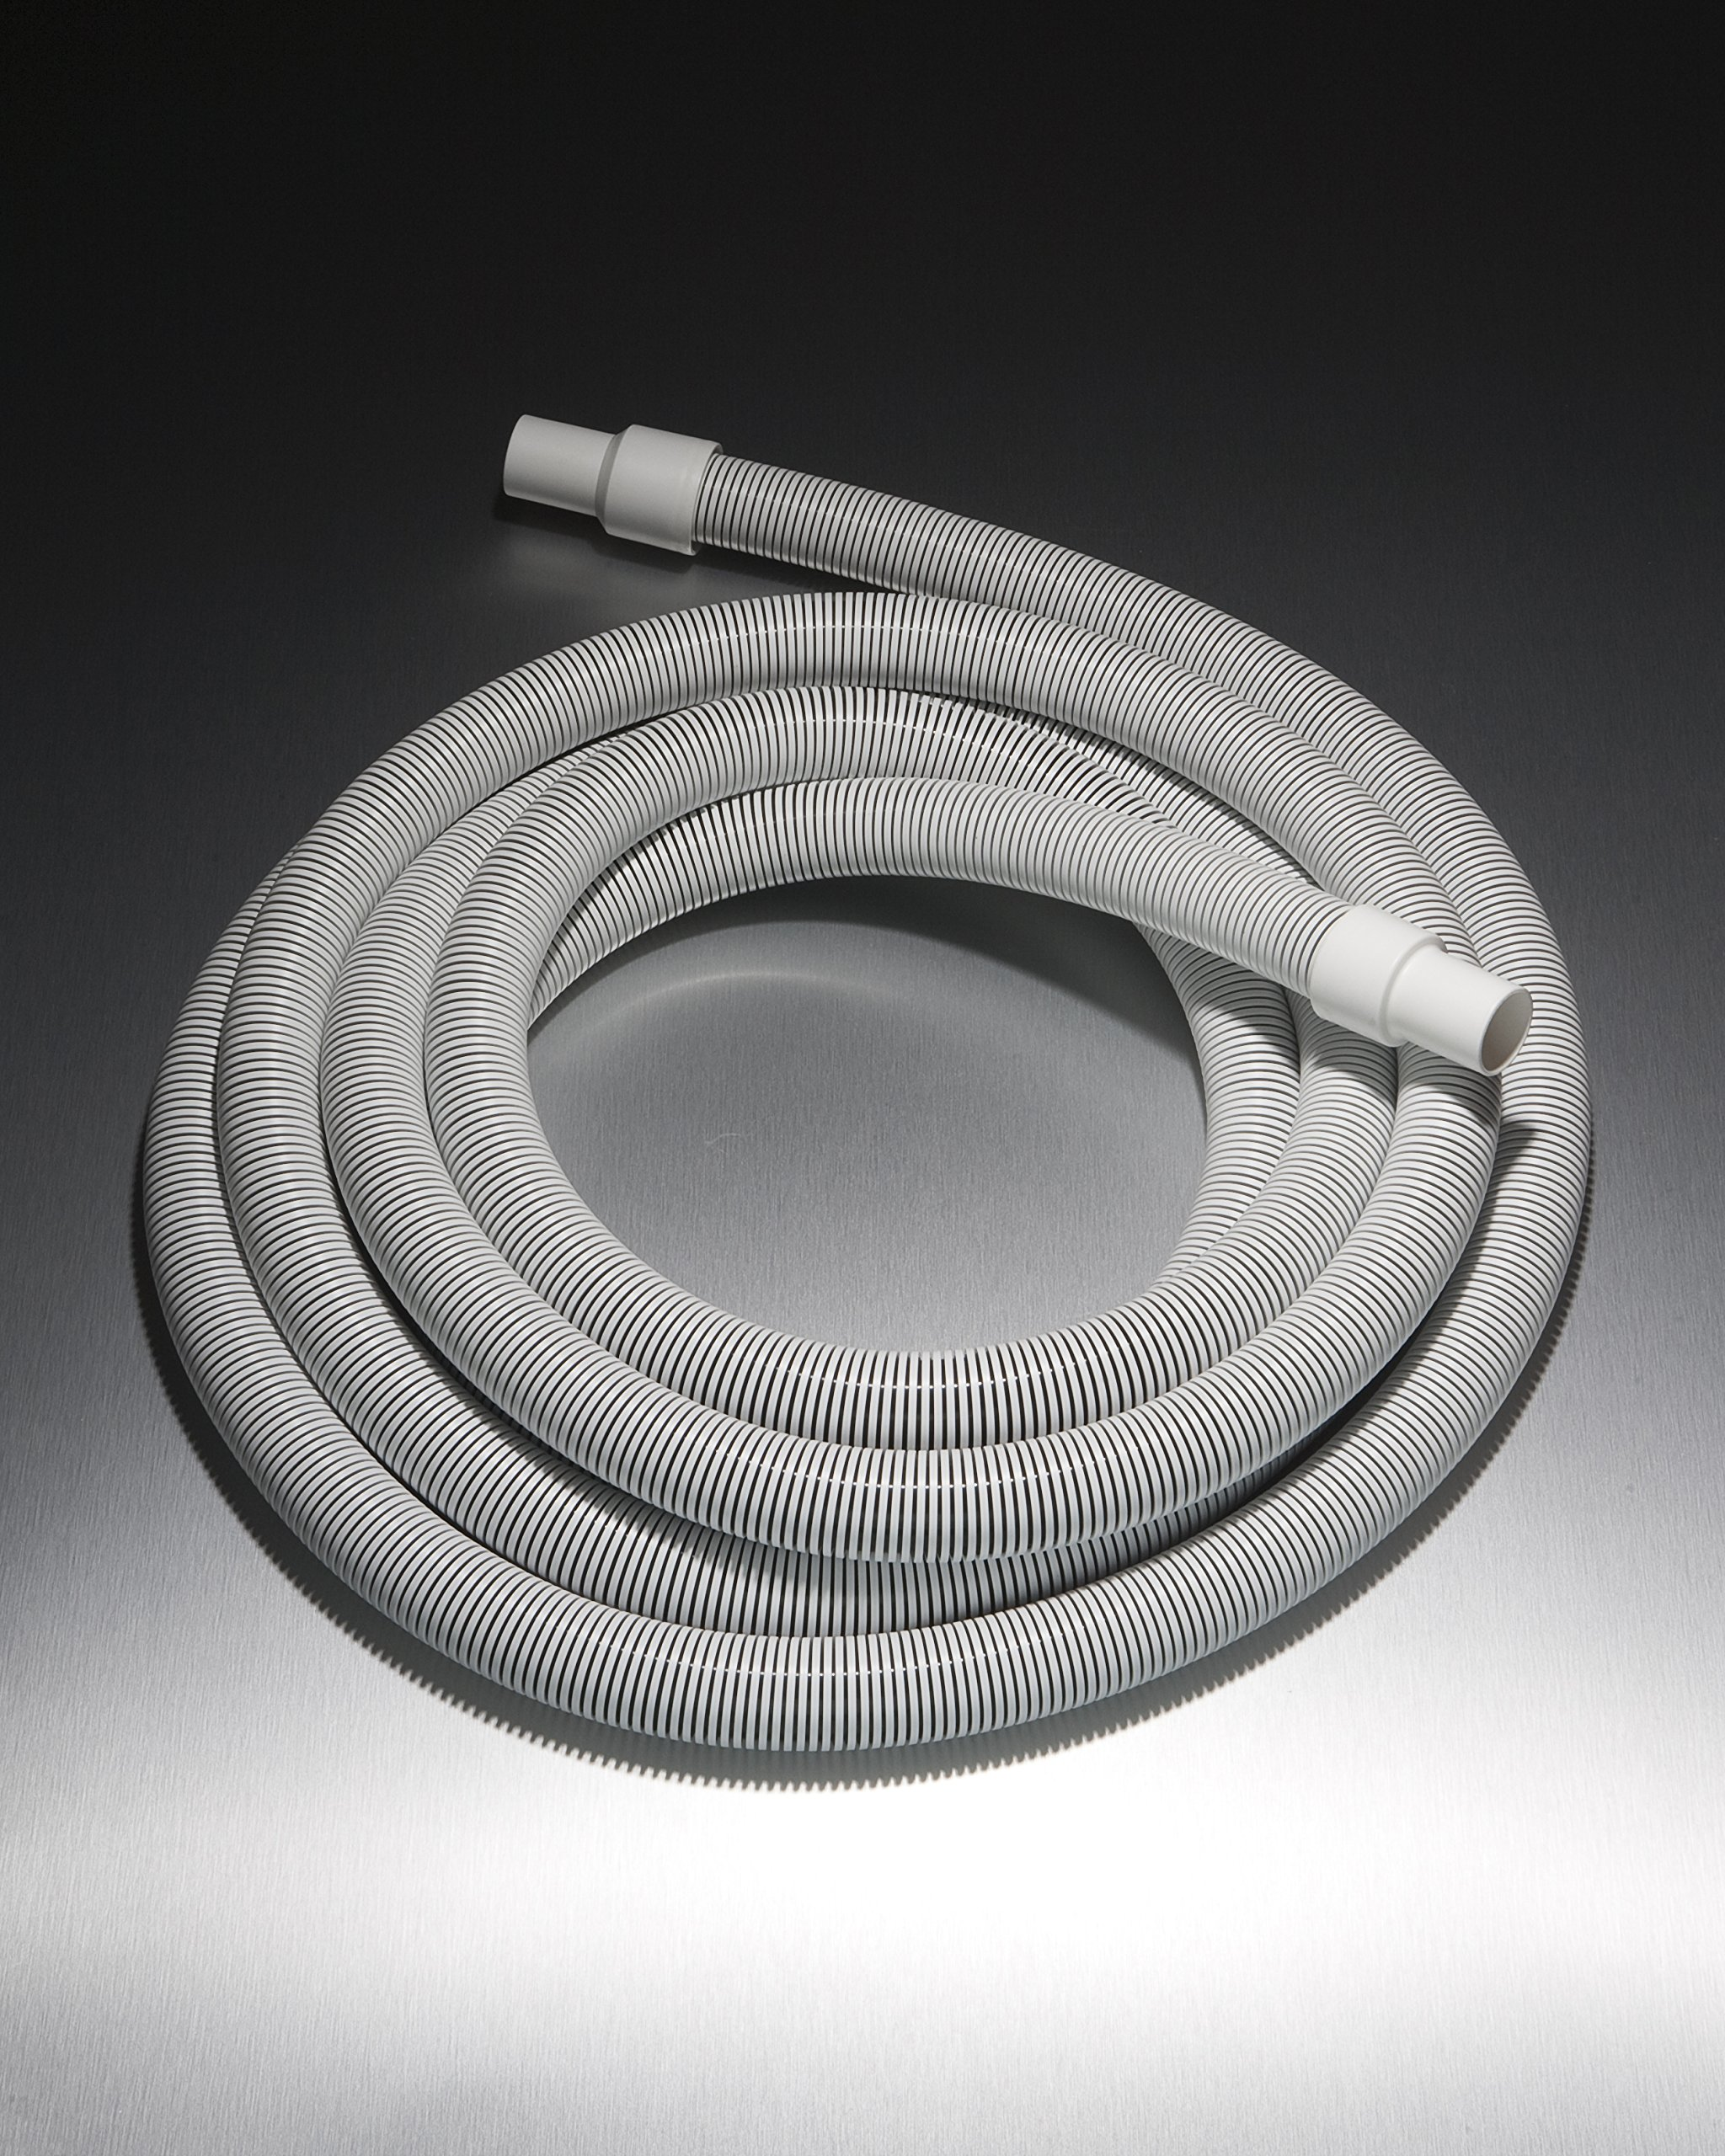 I-Helix Haviland In-Ground Swimming Pool 75' ft x 2'' Commercial Vacuum Hose by I-Helix